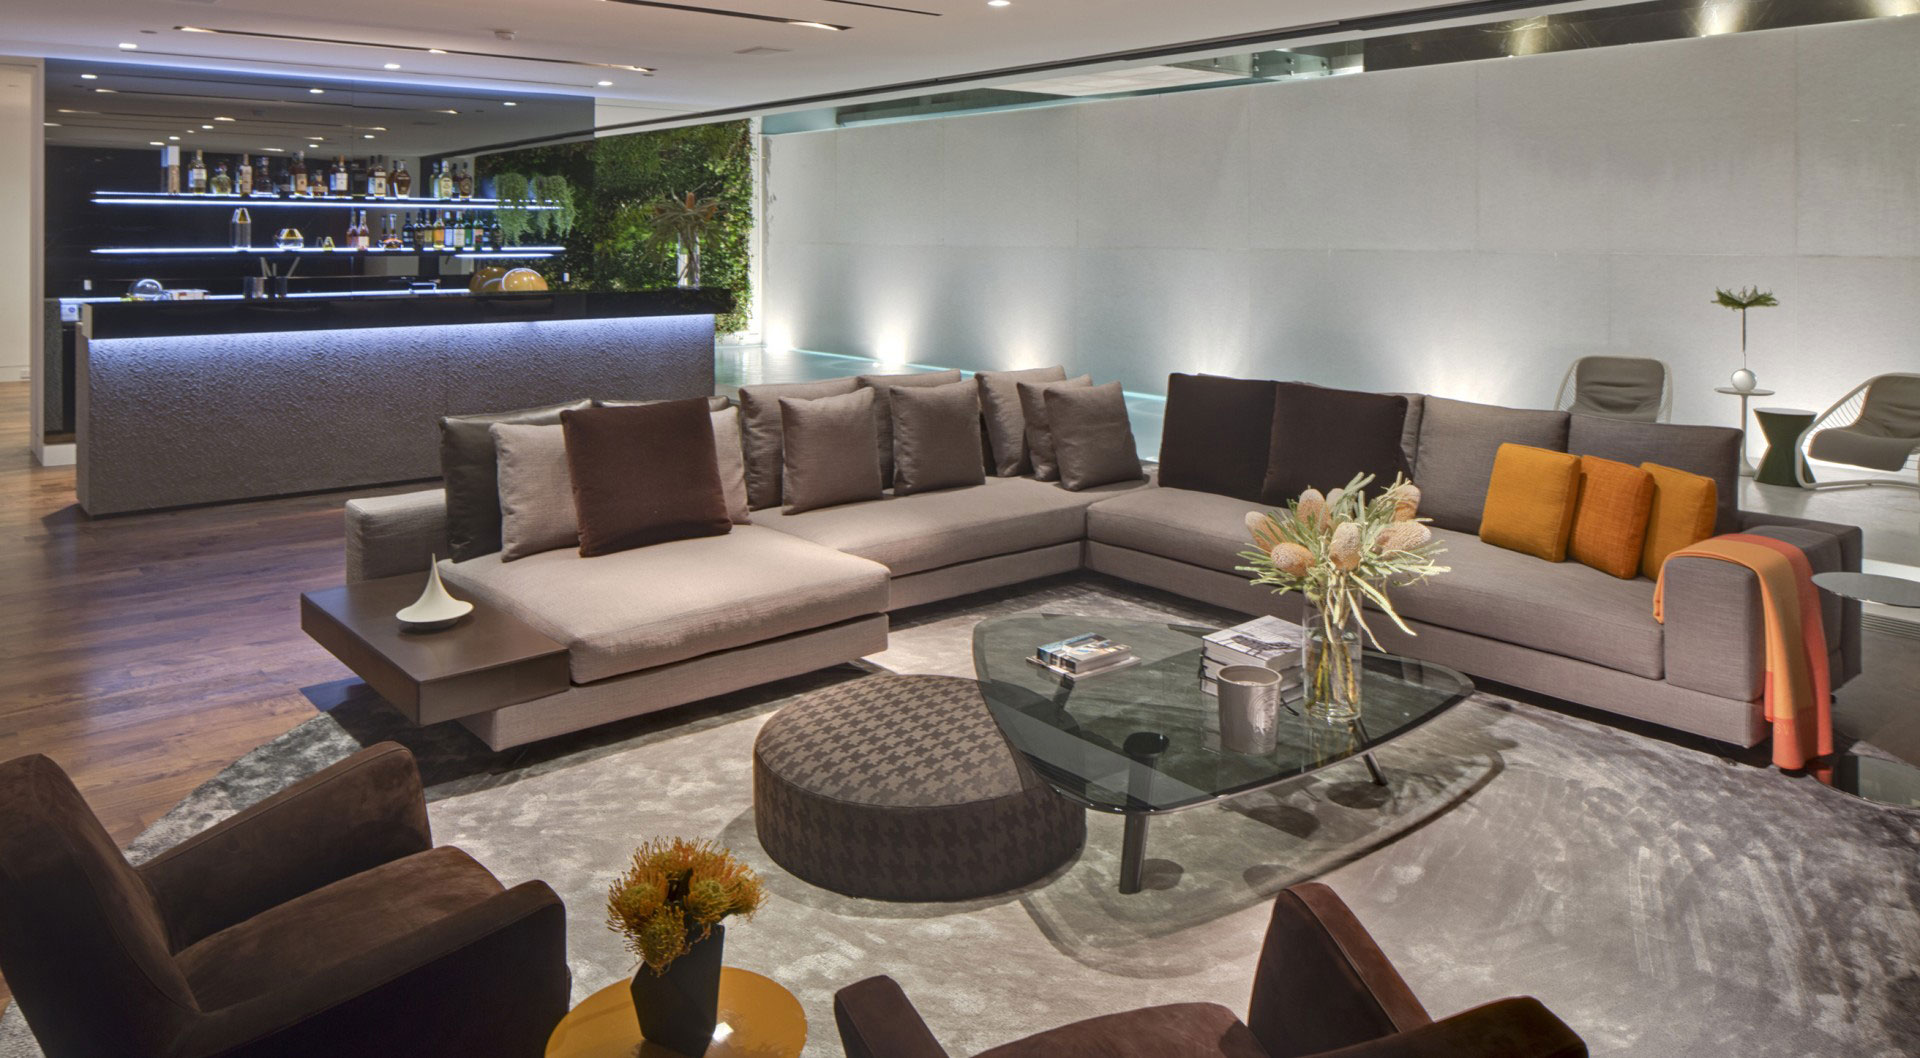 Simple Sofa Design - A dramatic glass home overlooking the l a basin